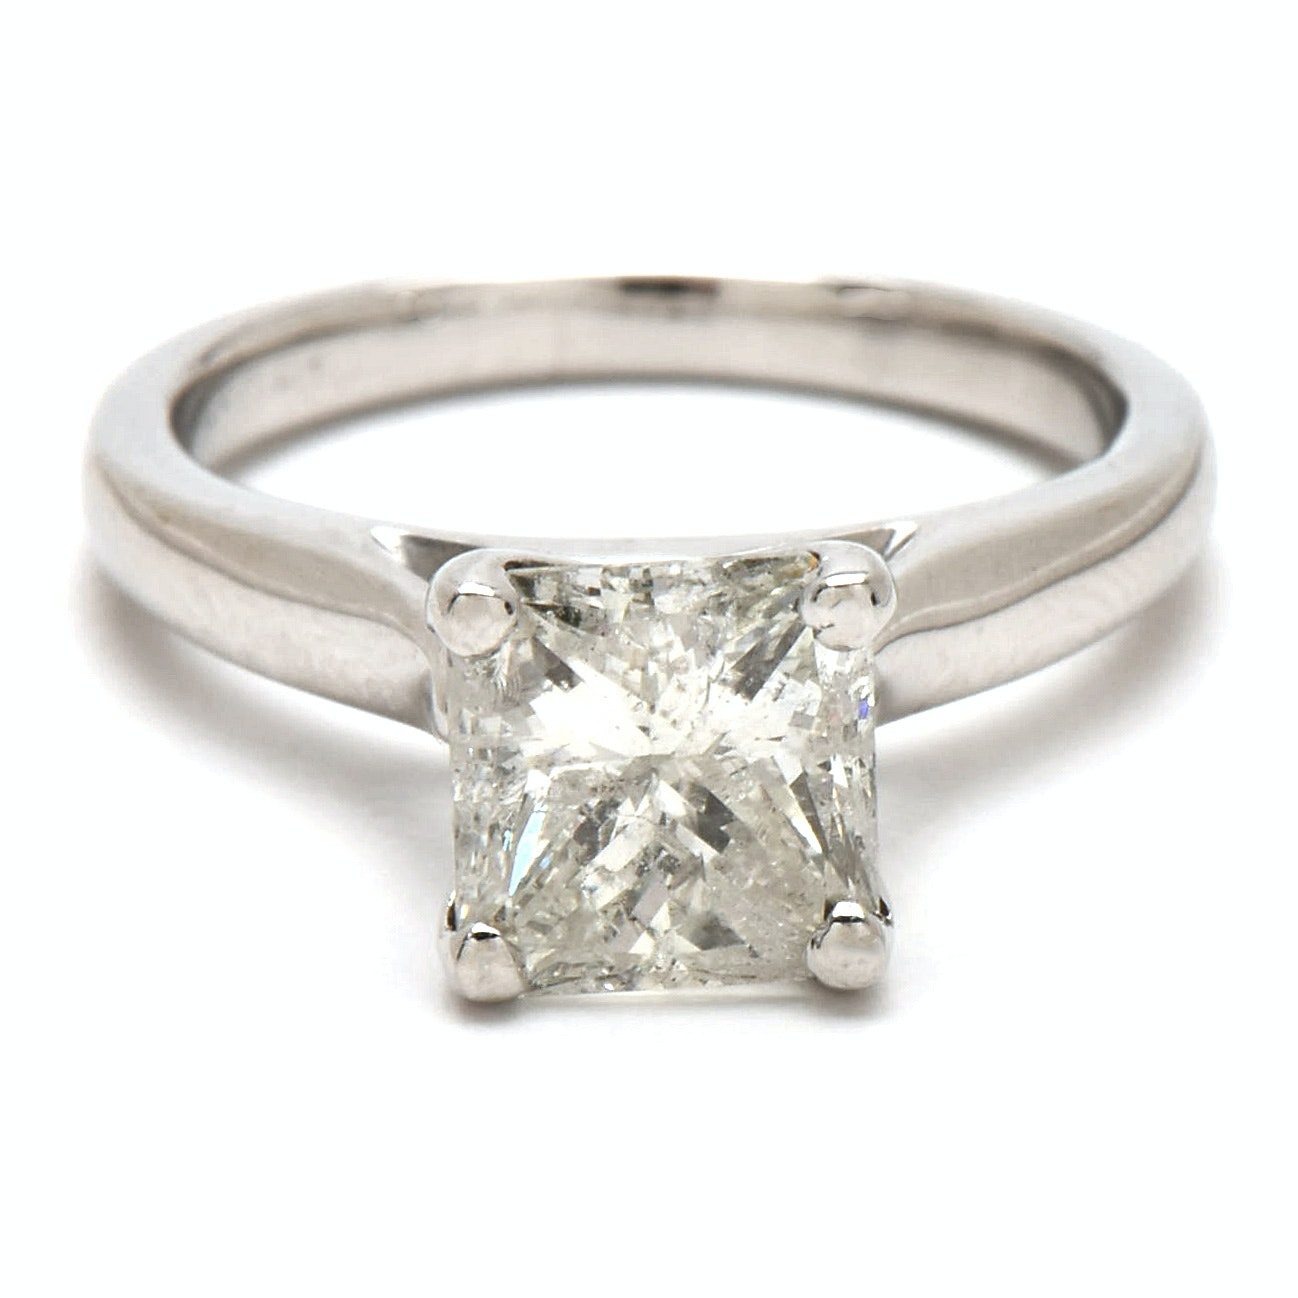 Platinum 1.80 CT Diamond Solitaire Ring